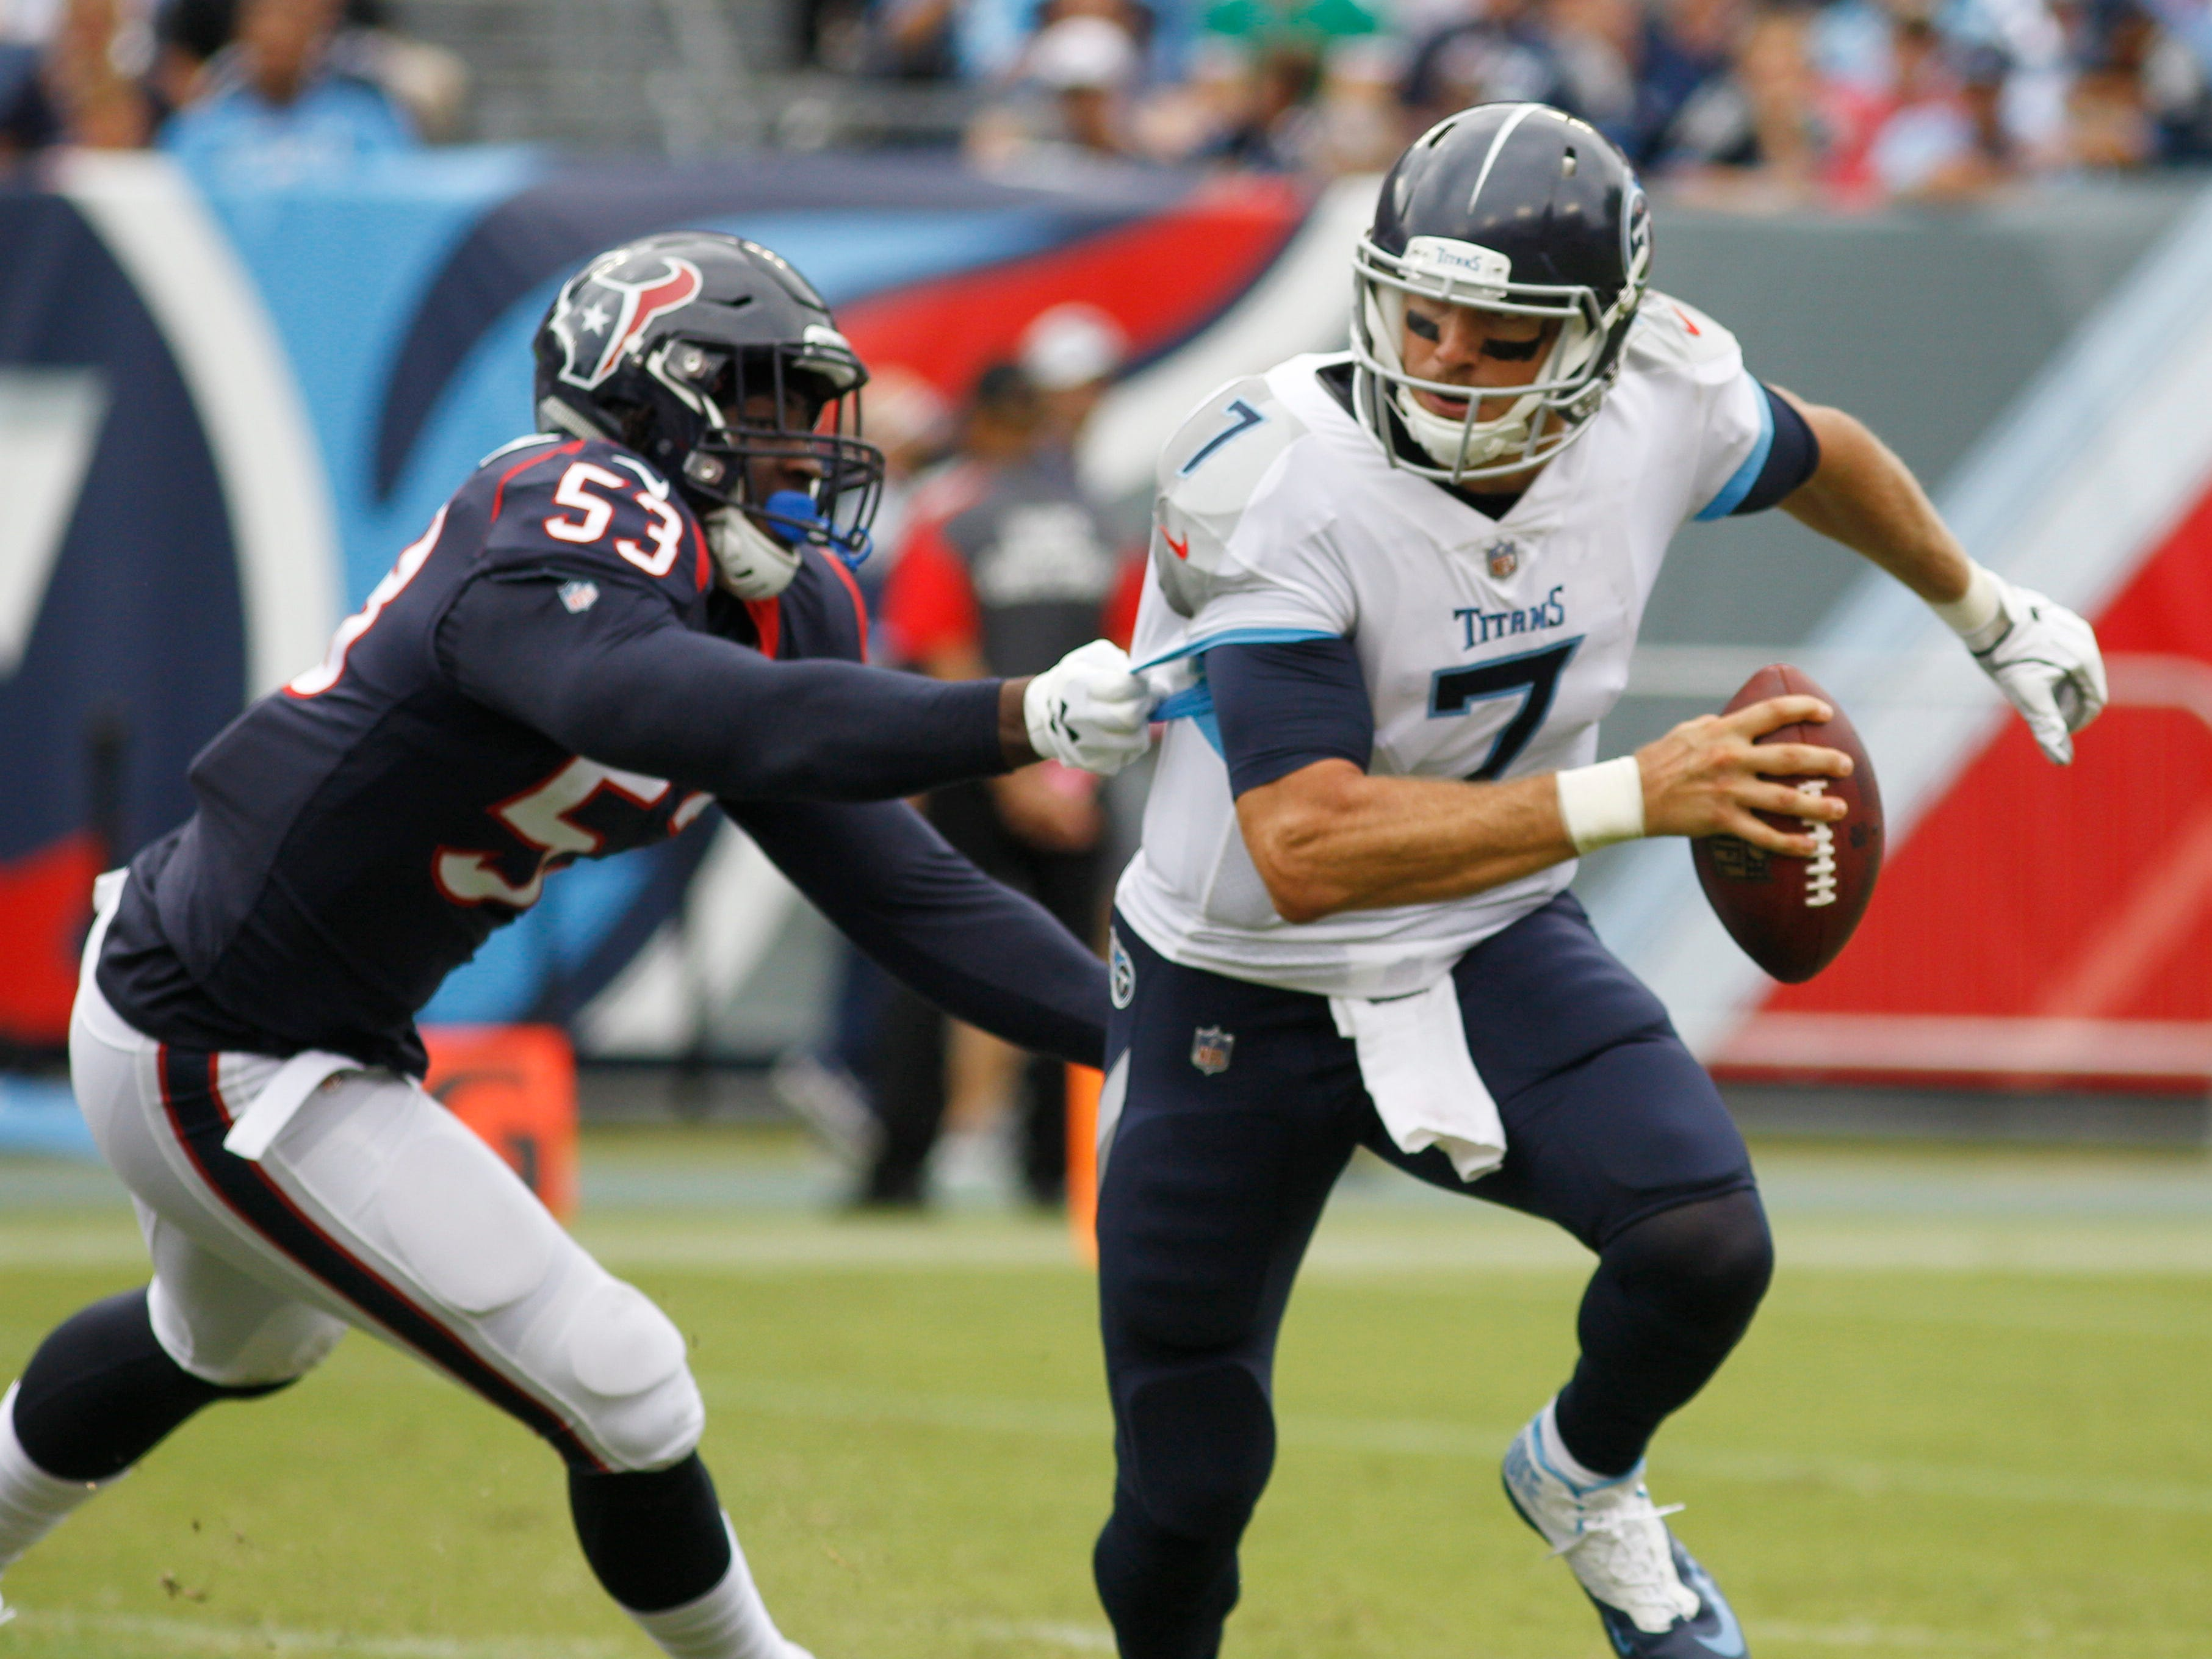 Biggest surprise: Titans beat Texans without Mariota -- Texans linebacker Duke Ejiofor (53) hangs onto as Titans quarterback Blaine Gabbert (7) scrambles in the third quarter at Nissan Stadium Sunday, Sept. 16, 2018, in Nashville, Tenn.